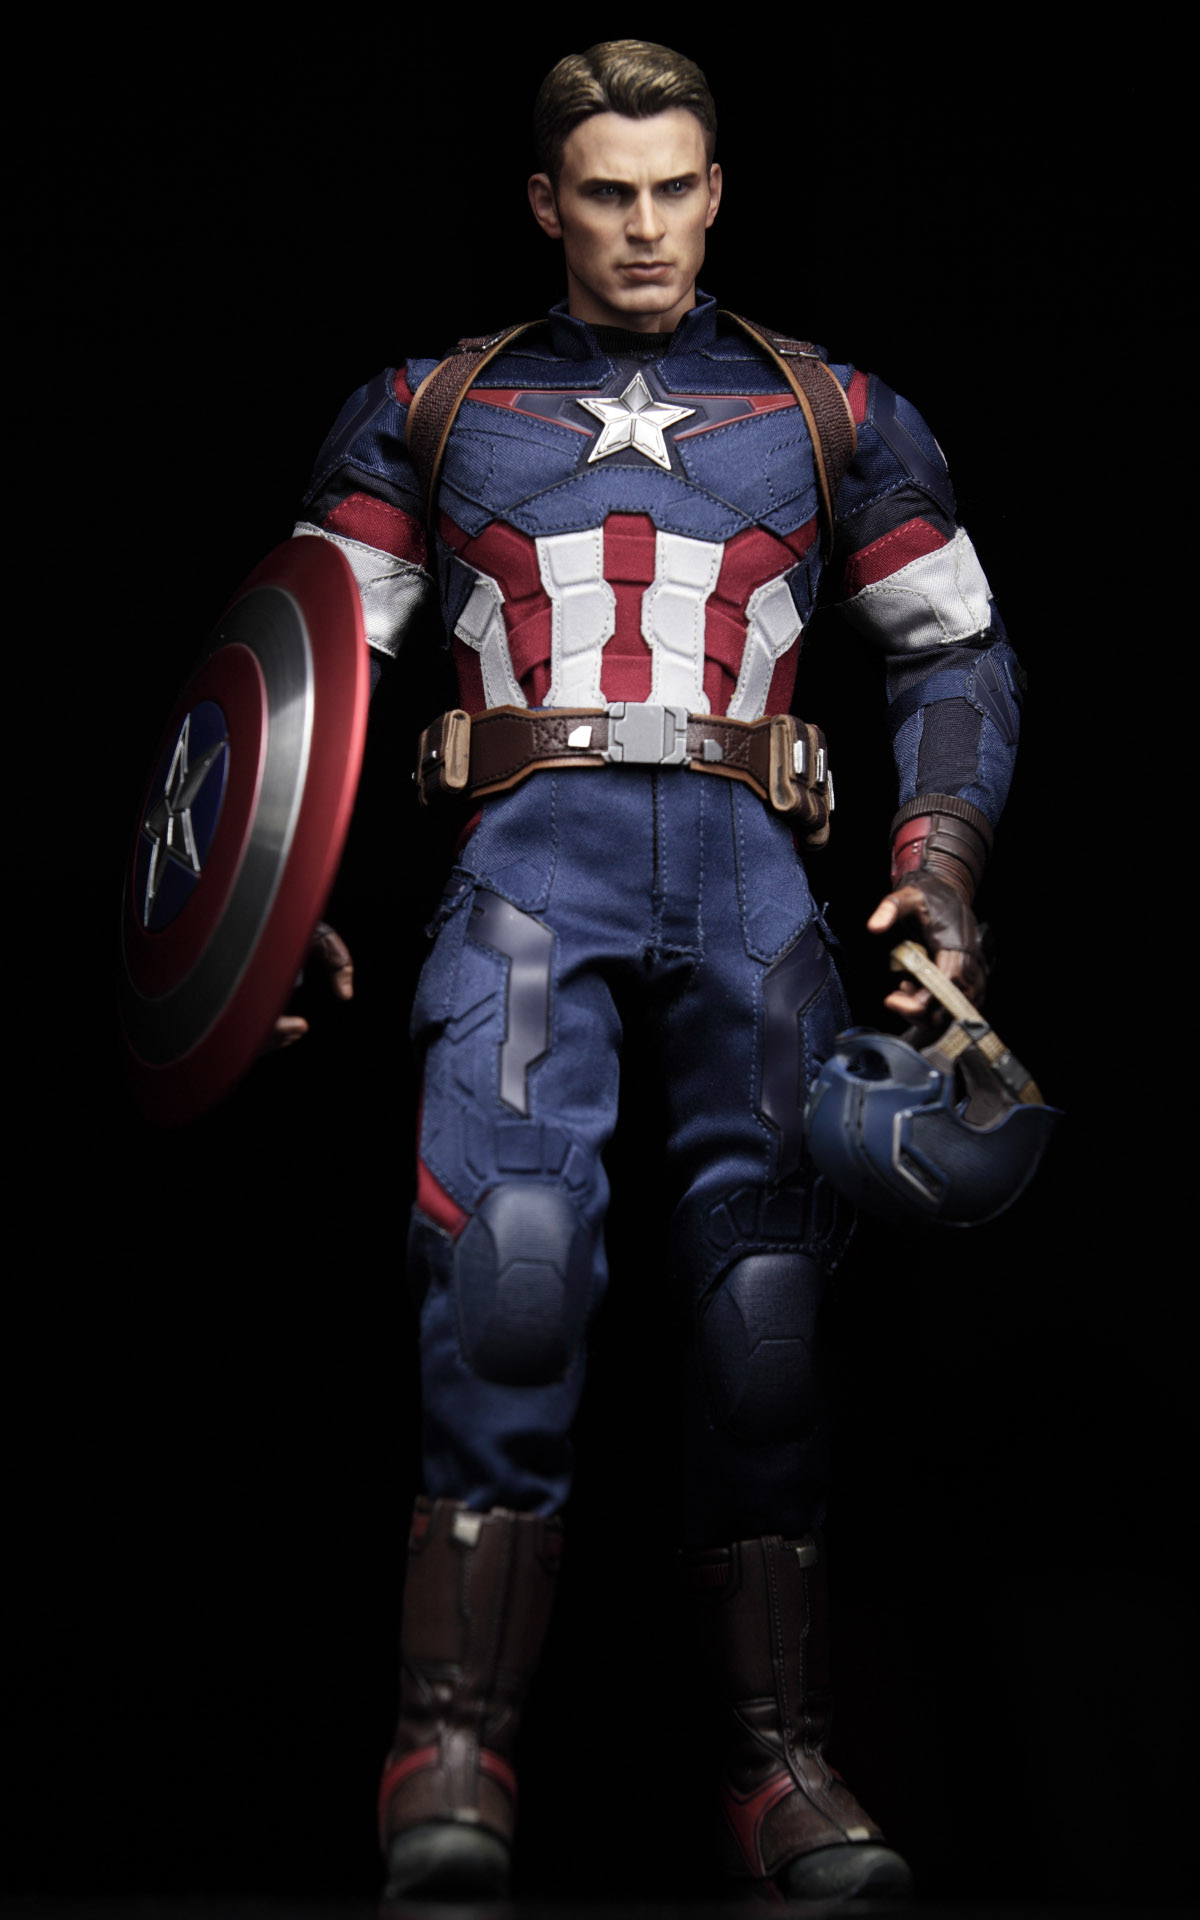 hottoys-avengers-age-of-ultron-Captain-America-picture02